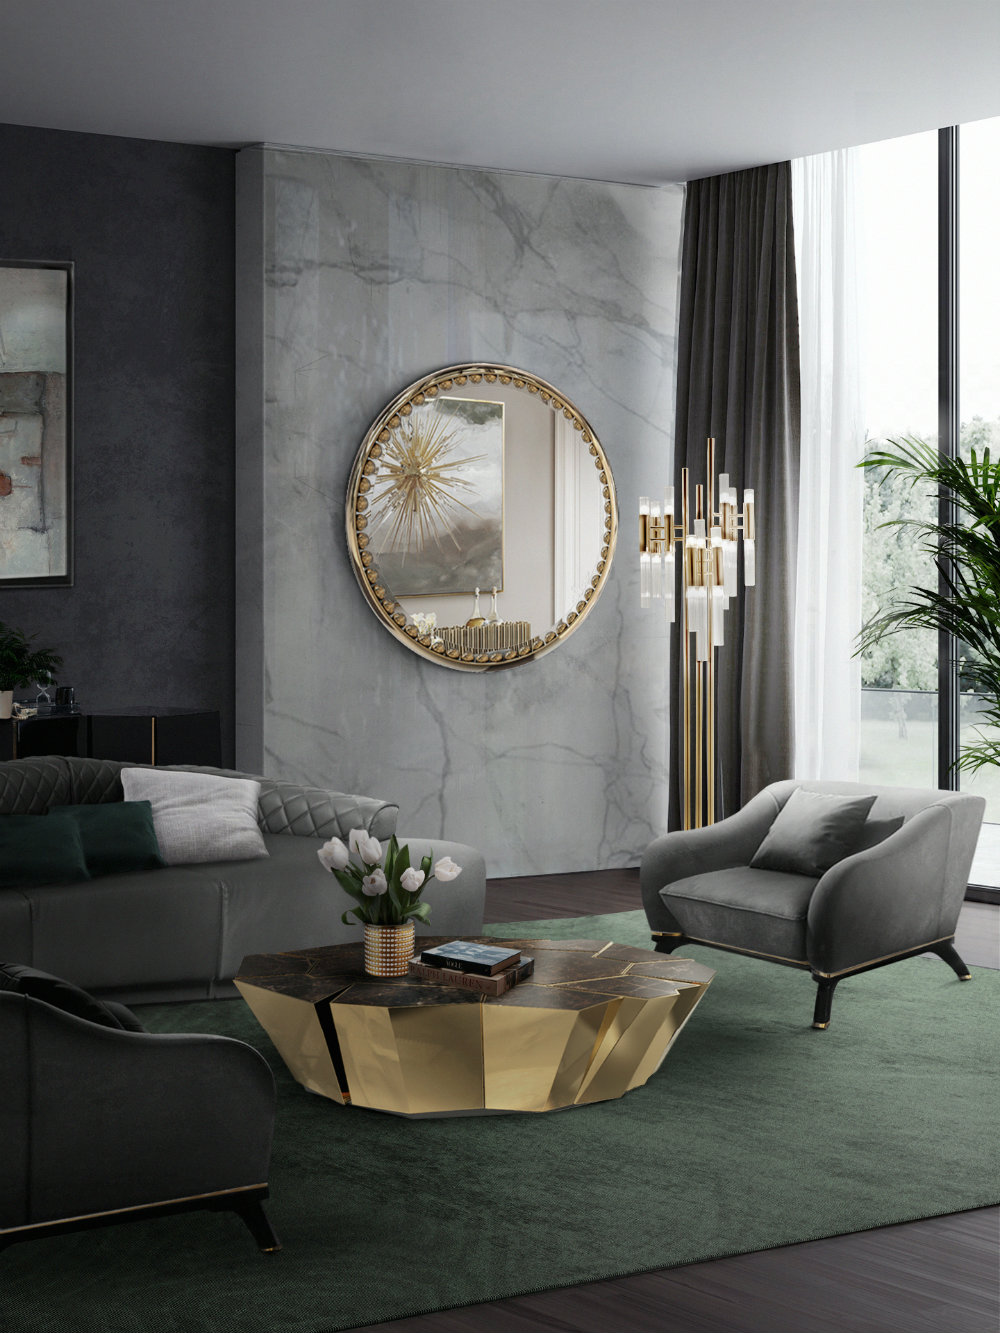 Stunning Interiors in the 2018 Fall Color Trends 01 Fall Color Trends Stunning Interiors in the 2018 Fall Color Trends Stunning Interiors in the Fall Color Trends 01